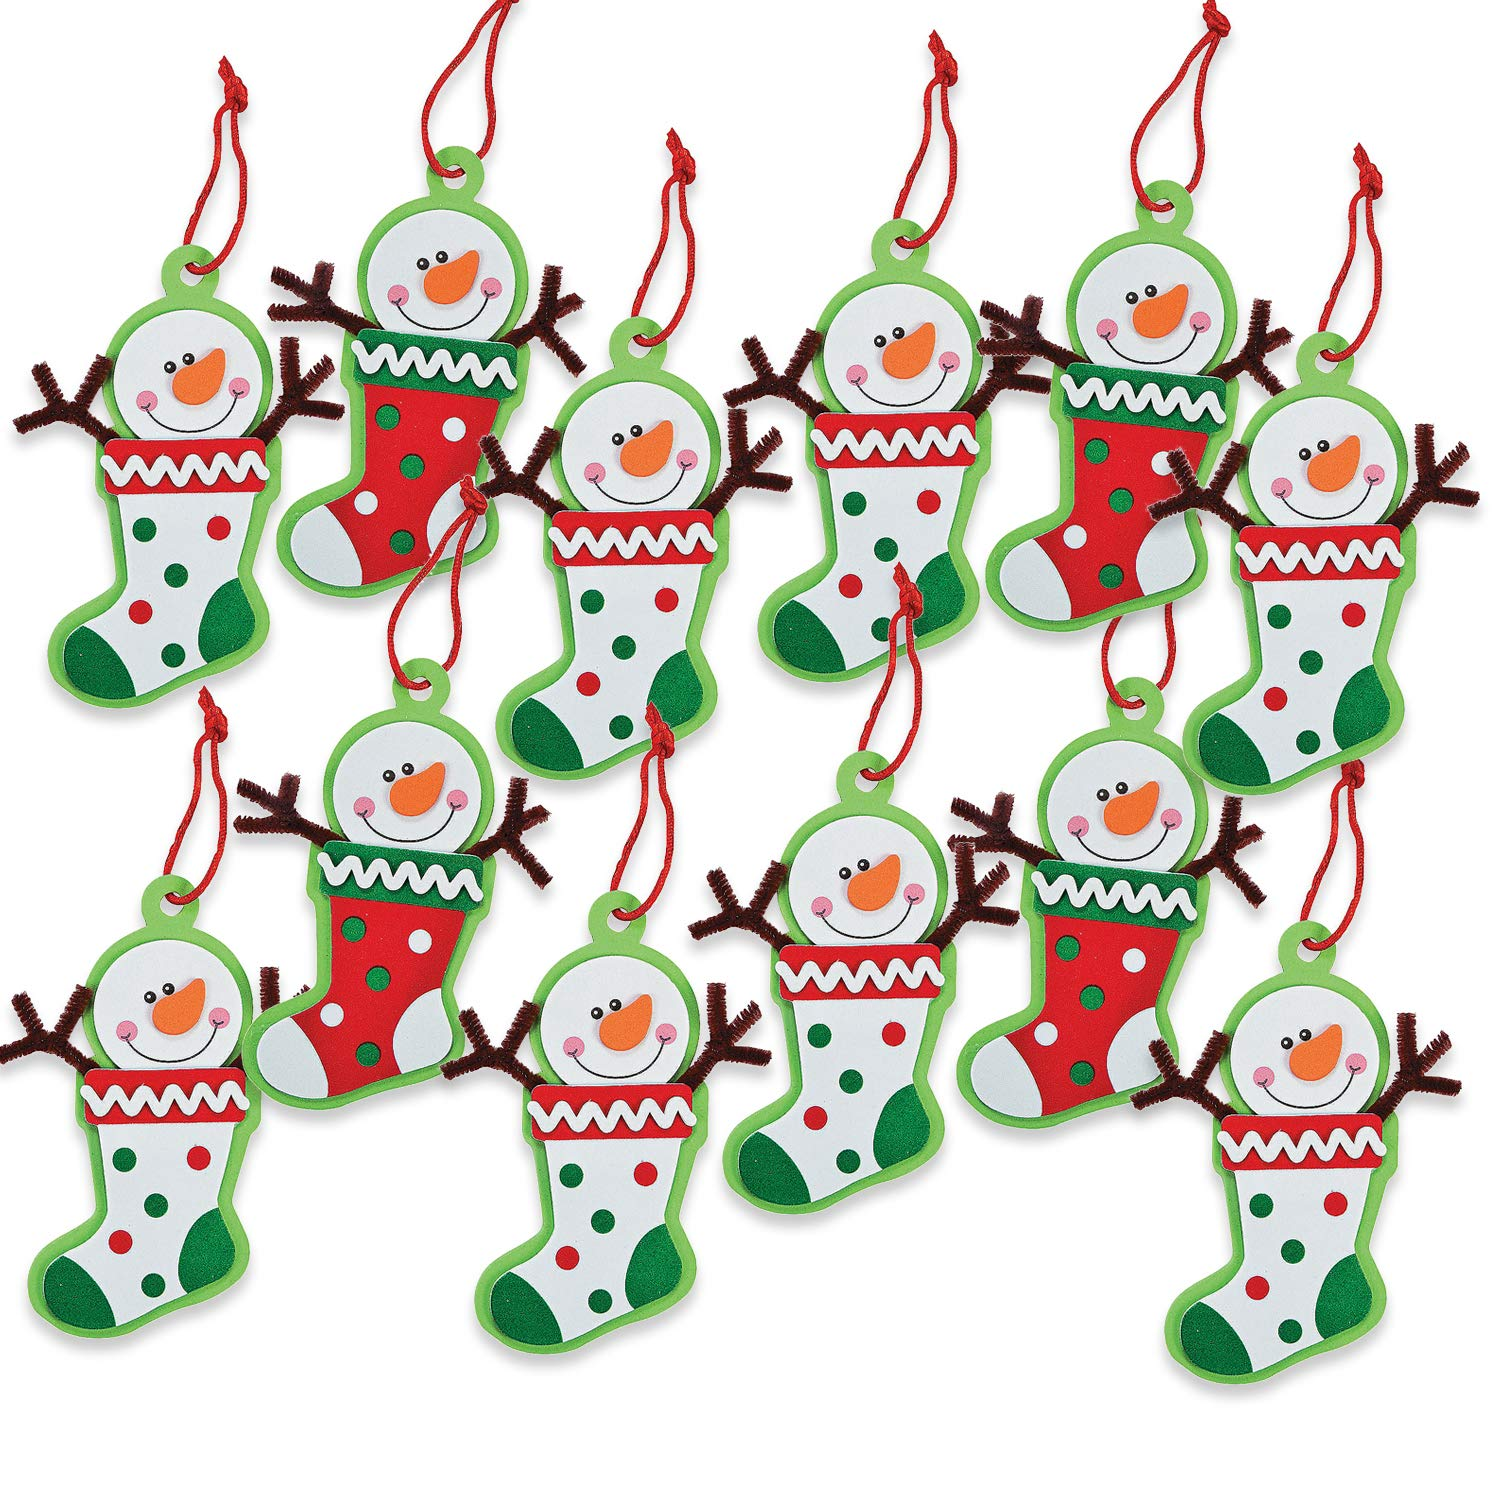 12 - Snowman Stocking Ornament Craft Kit - Crafts for Kids & Ornament Crafts 81ZuSQ9htxL